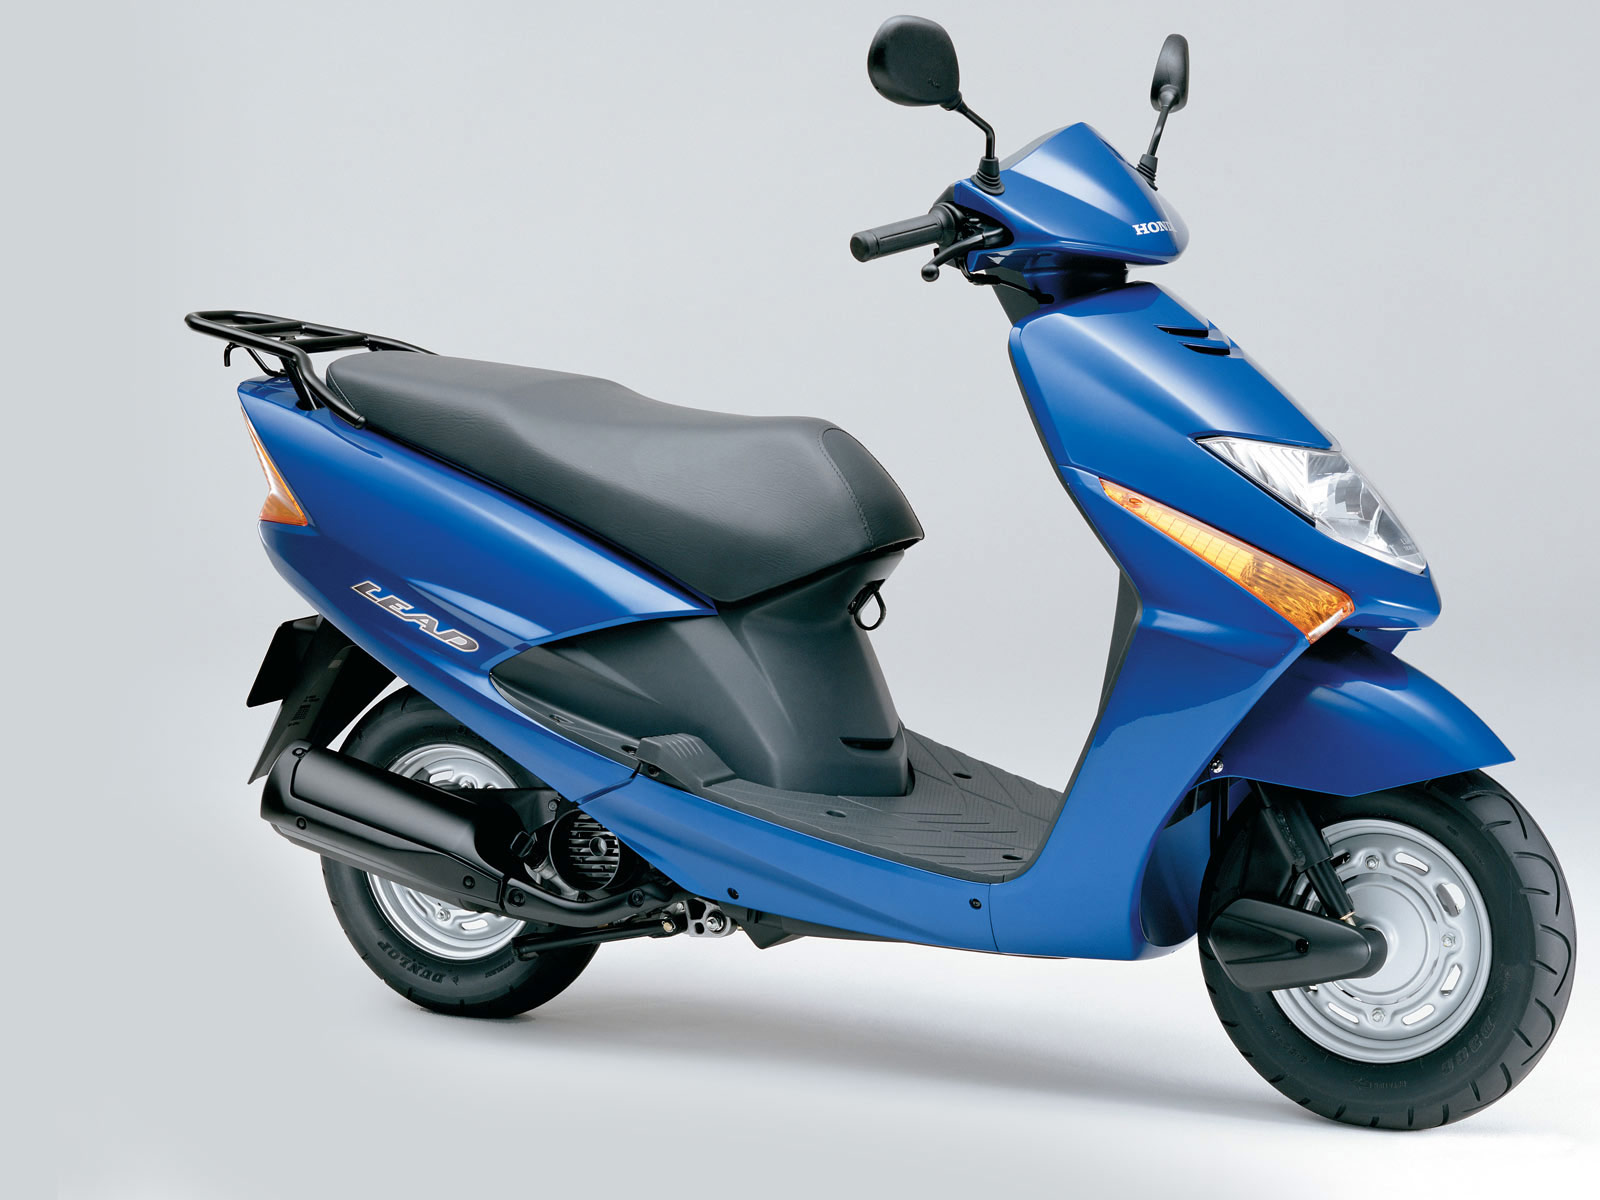 2003 Honda Lead Scooter Pictures Accident Lawyers Info